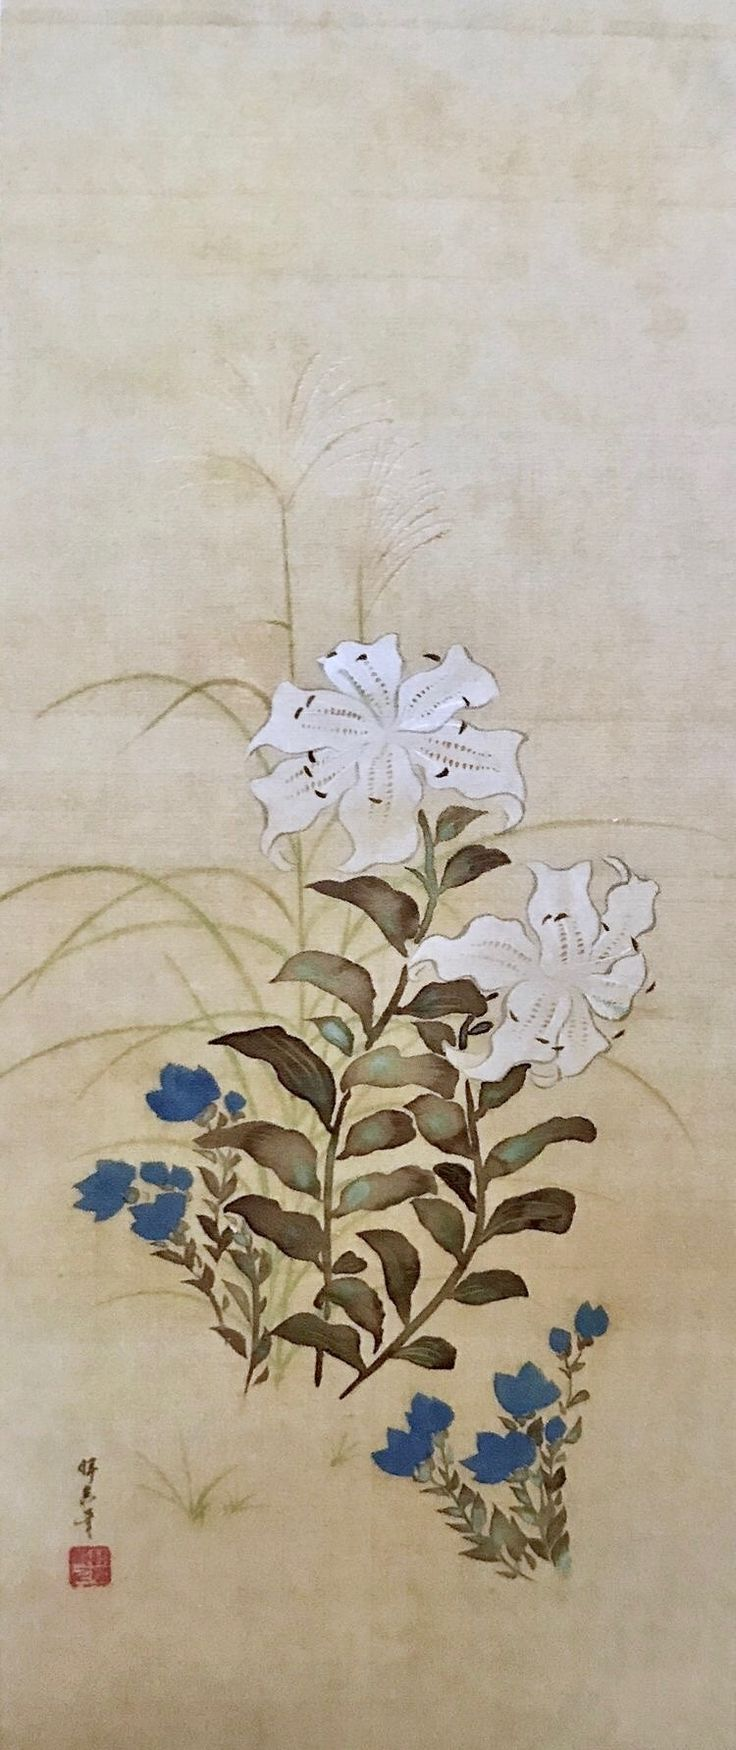 Flowers of Summer. Sakai Hoitsu. About 1810. One of a trio of Japanese hanging scrolls. Feinberg Collection.